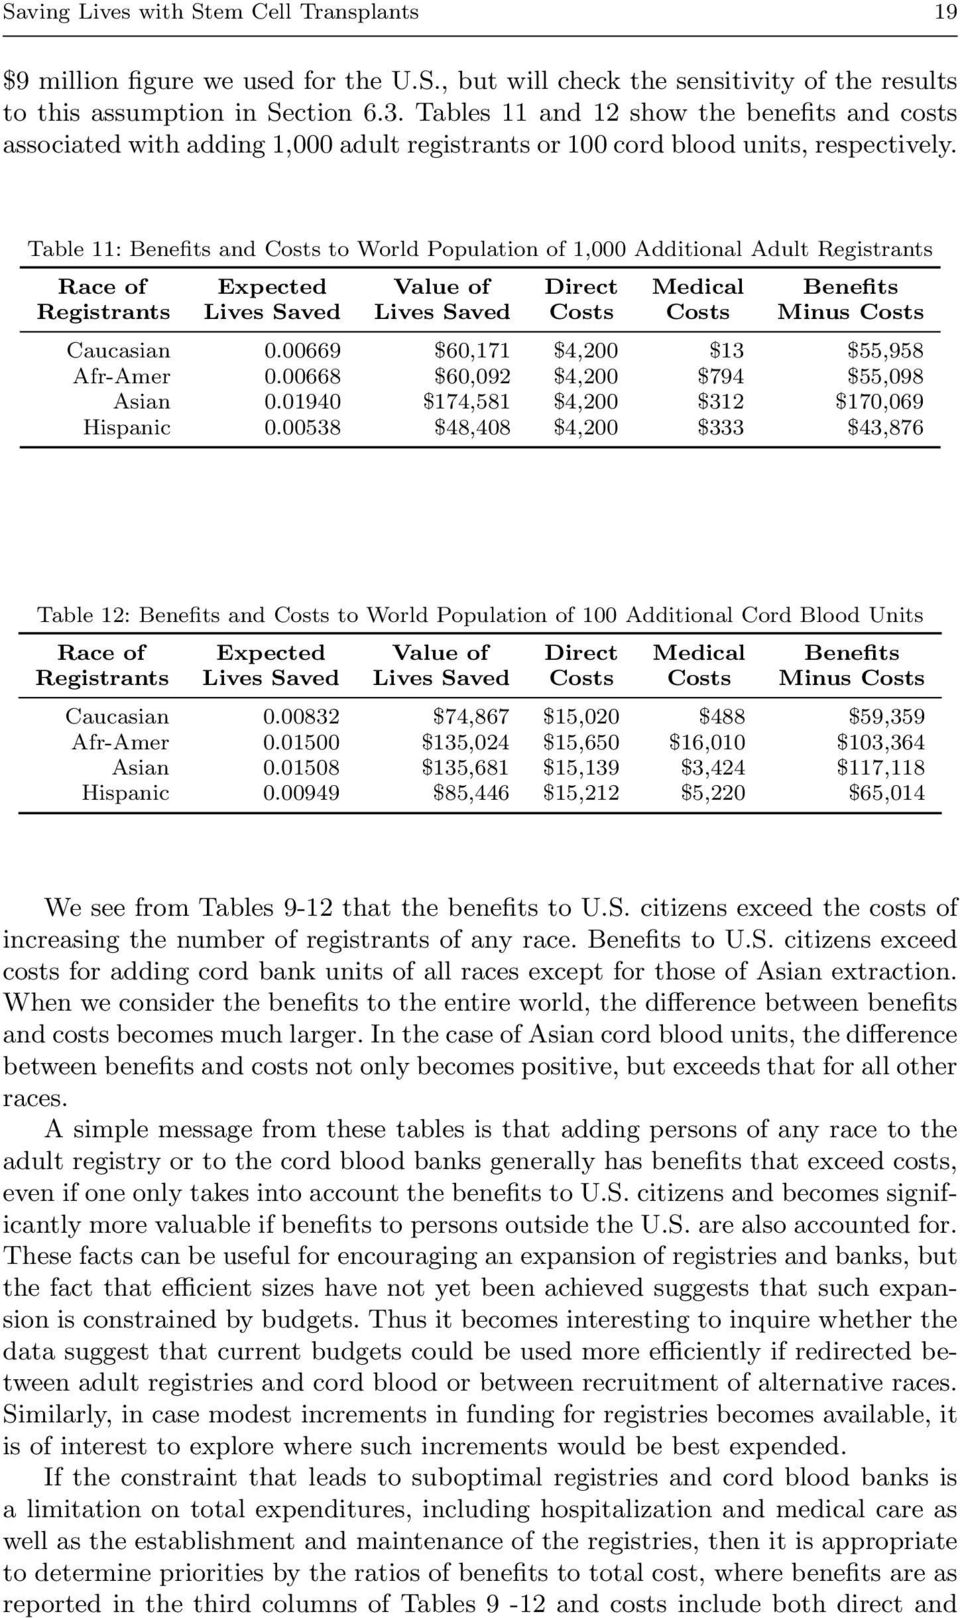 Table 11: Benefits and Costs to World Population of 1,000 Additional Adult Registrants Race of Expected Value of Direct Medical Benefits Registrants Lives Saved Lives Saved Costs Costs Minus Costs